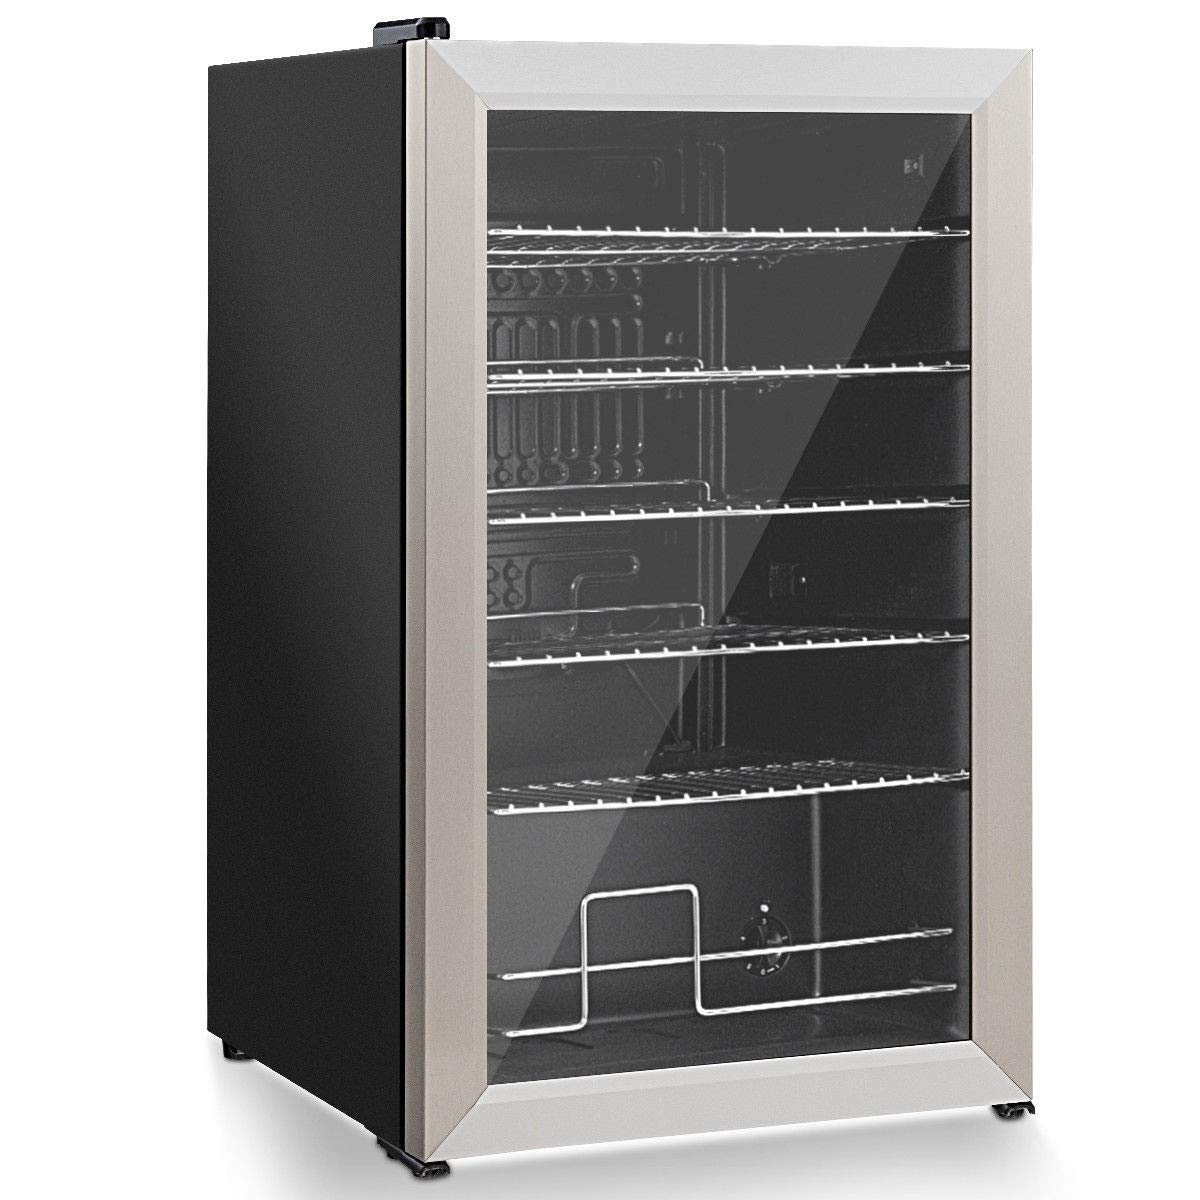 76 Can Beverage Refrigerator Cooler with Glass Door Perfect for Soda Beer or Wine by USA_BEST_SELLER